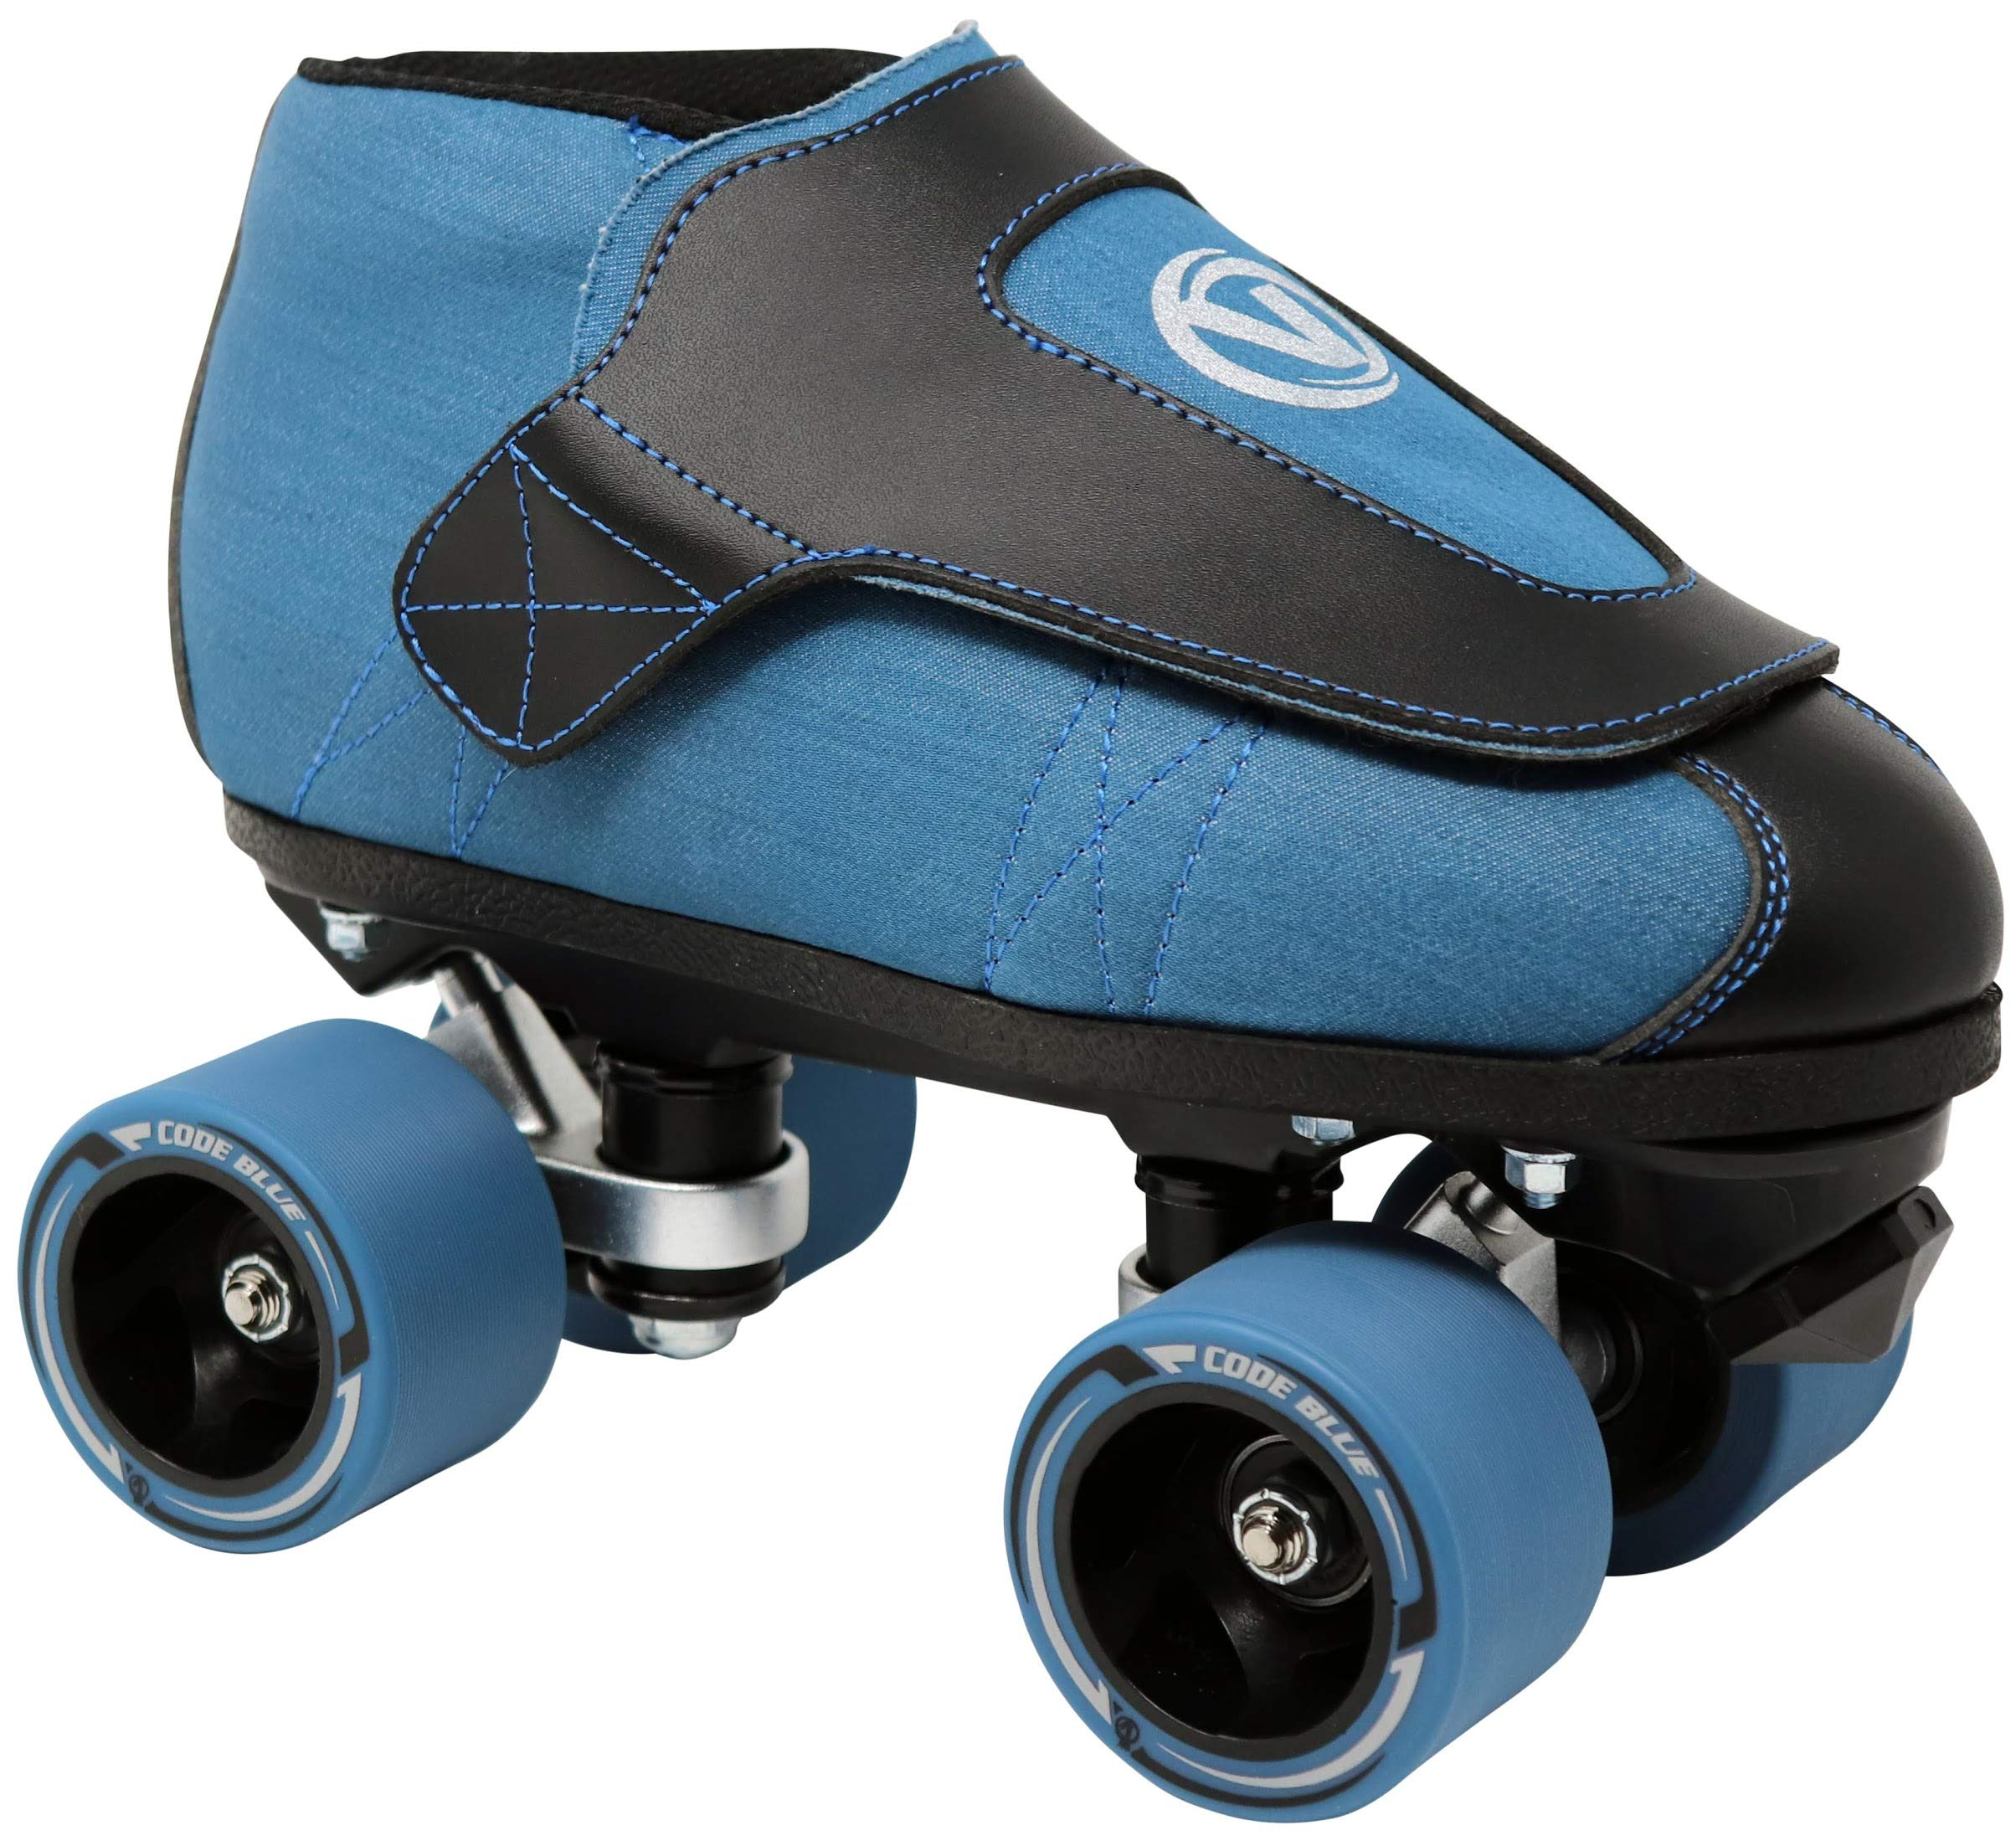 VNLA Code Blue Jam Skate - Mens & Womens Speed Skates - Quad Skates for Women & Men - Adjustable Roller Skate/Rollerskates - Outdoor & Indoor Adult Quad Skate - Kid/Kids Roller Skates (Size 10) by VNLA (Image #1)